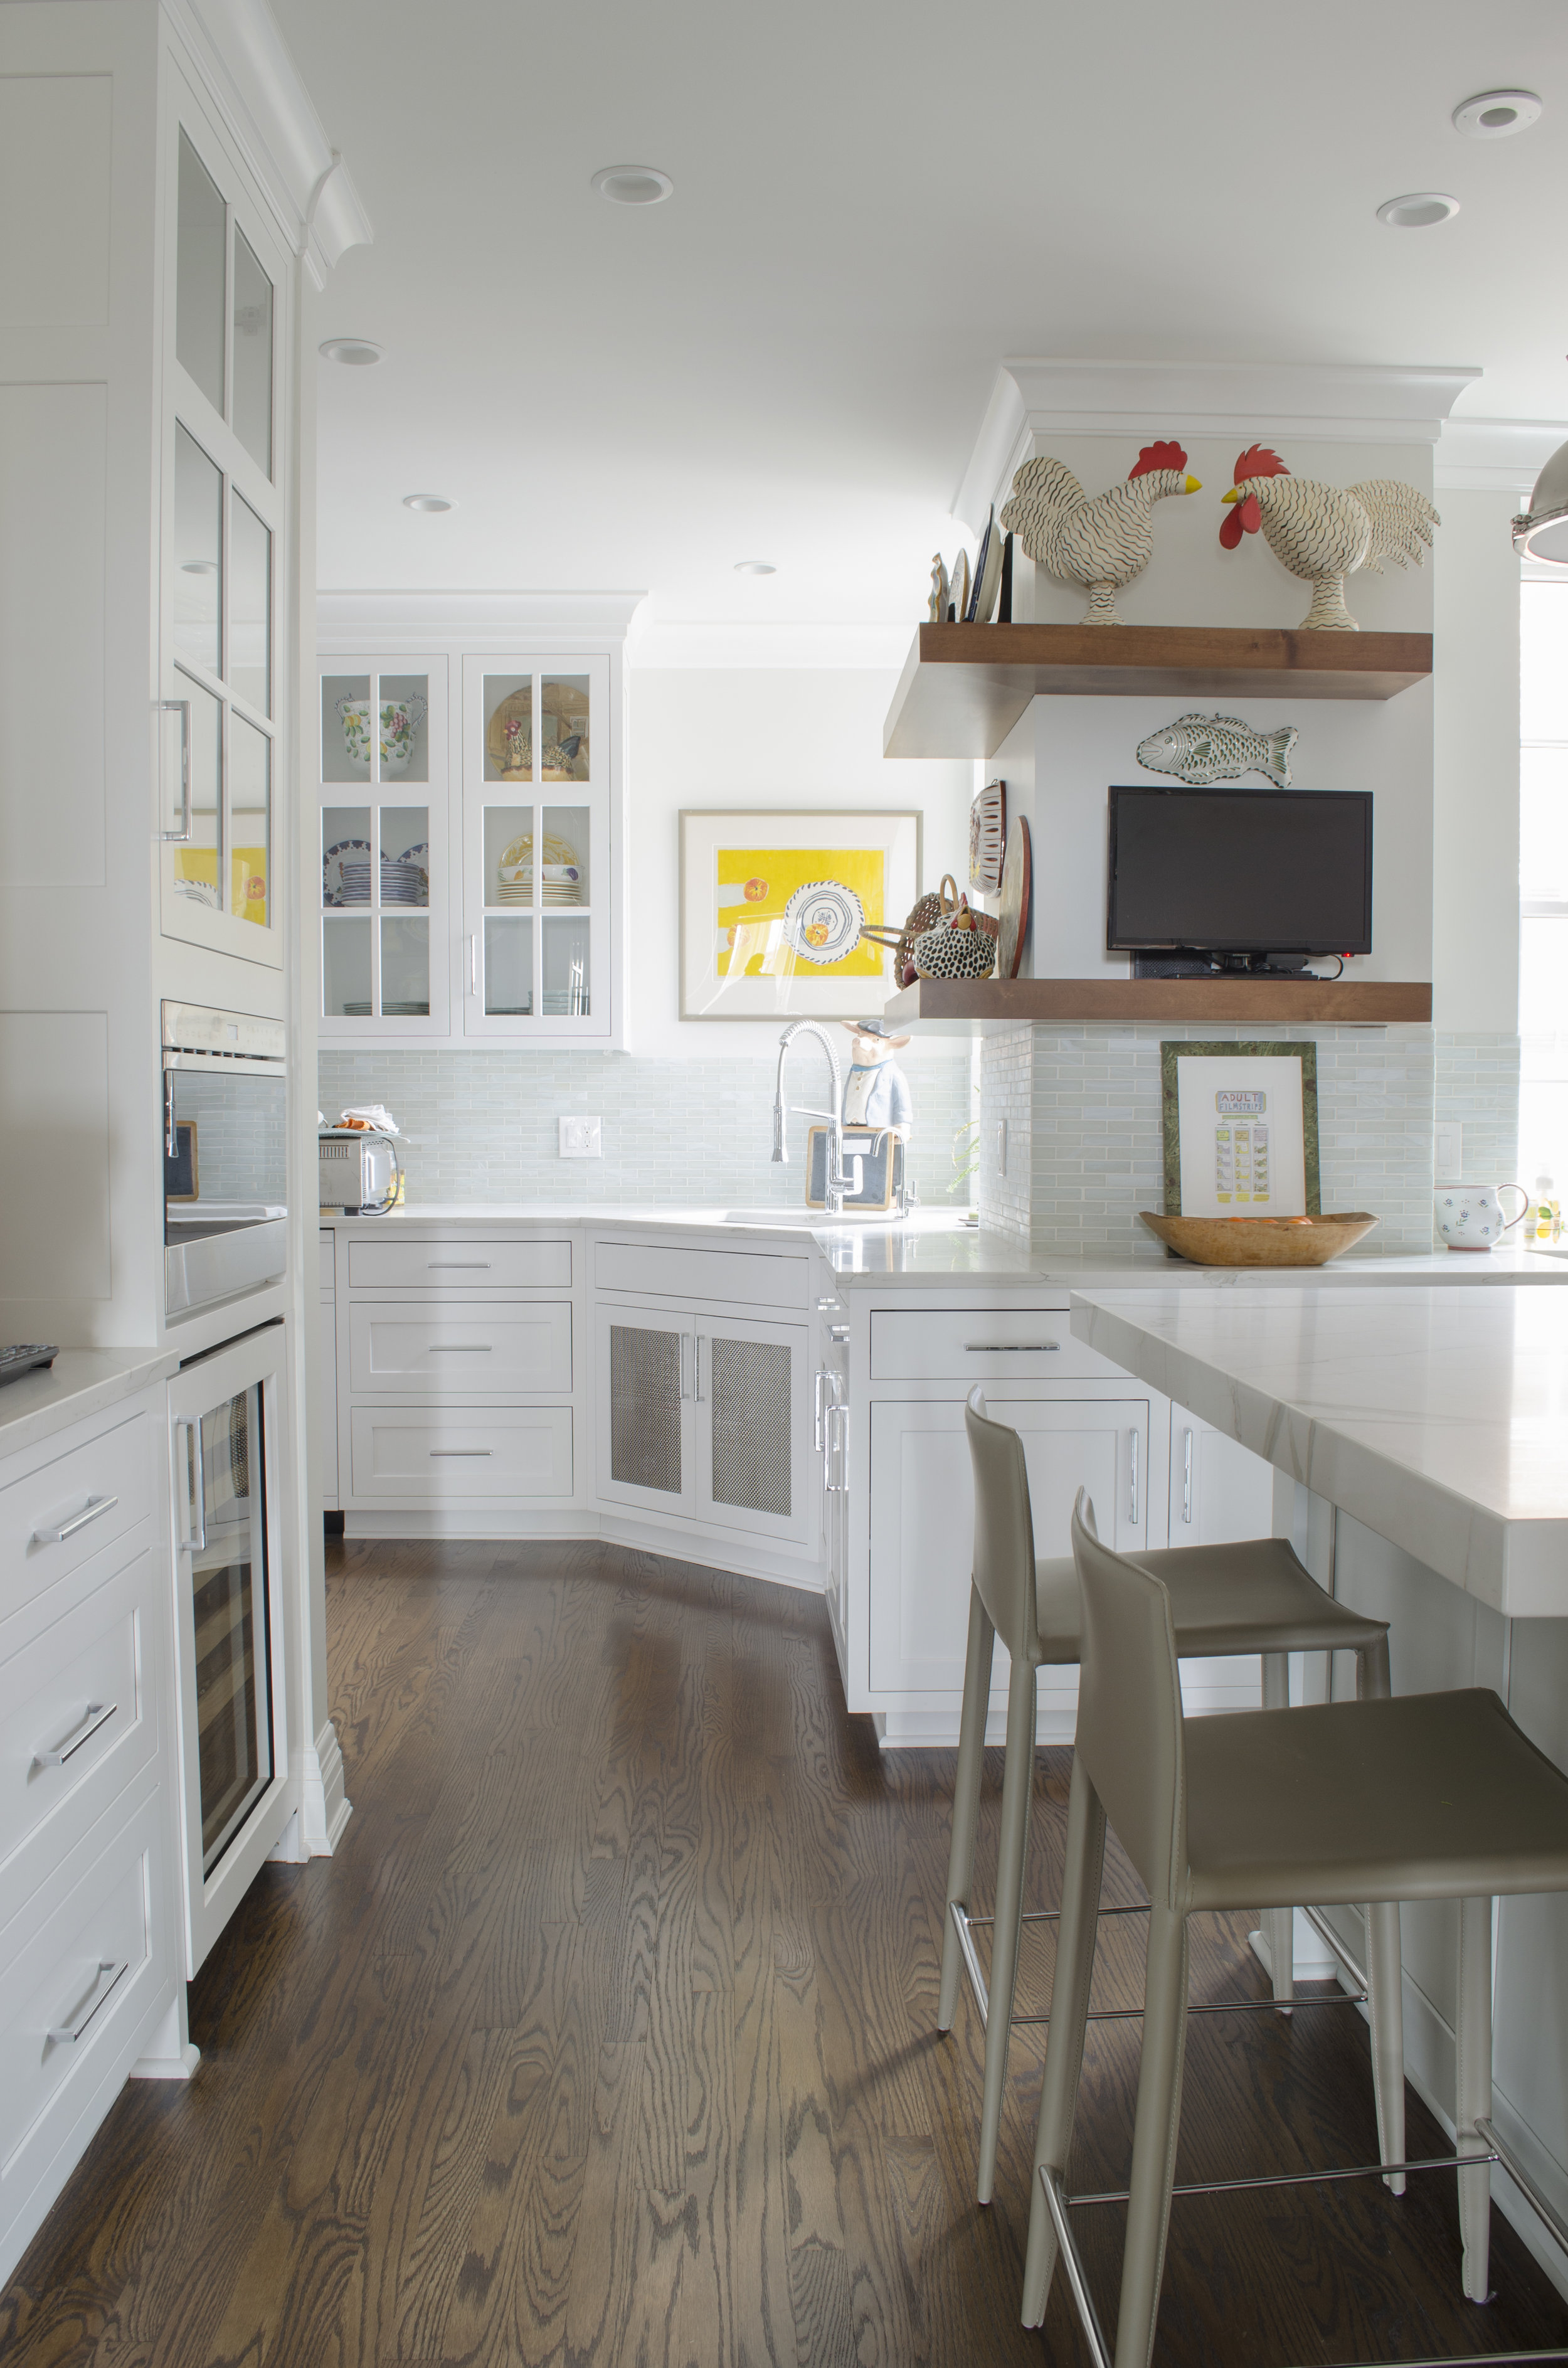 Stenson_Kitchen_02.jpg